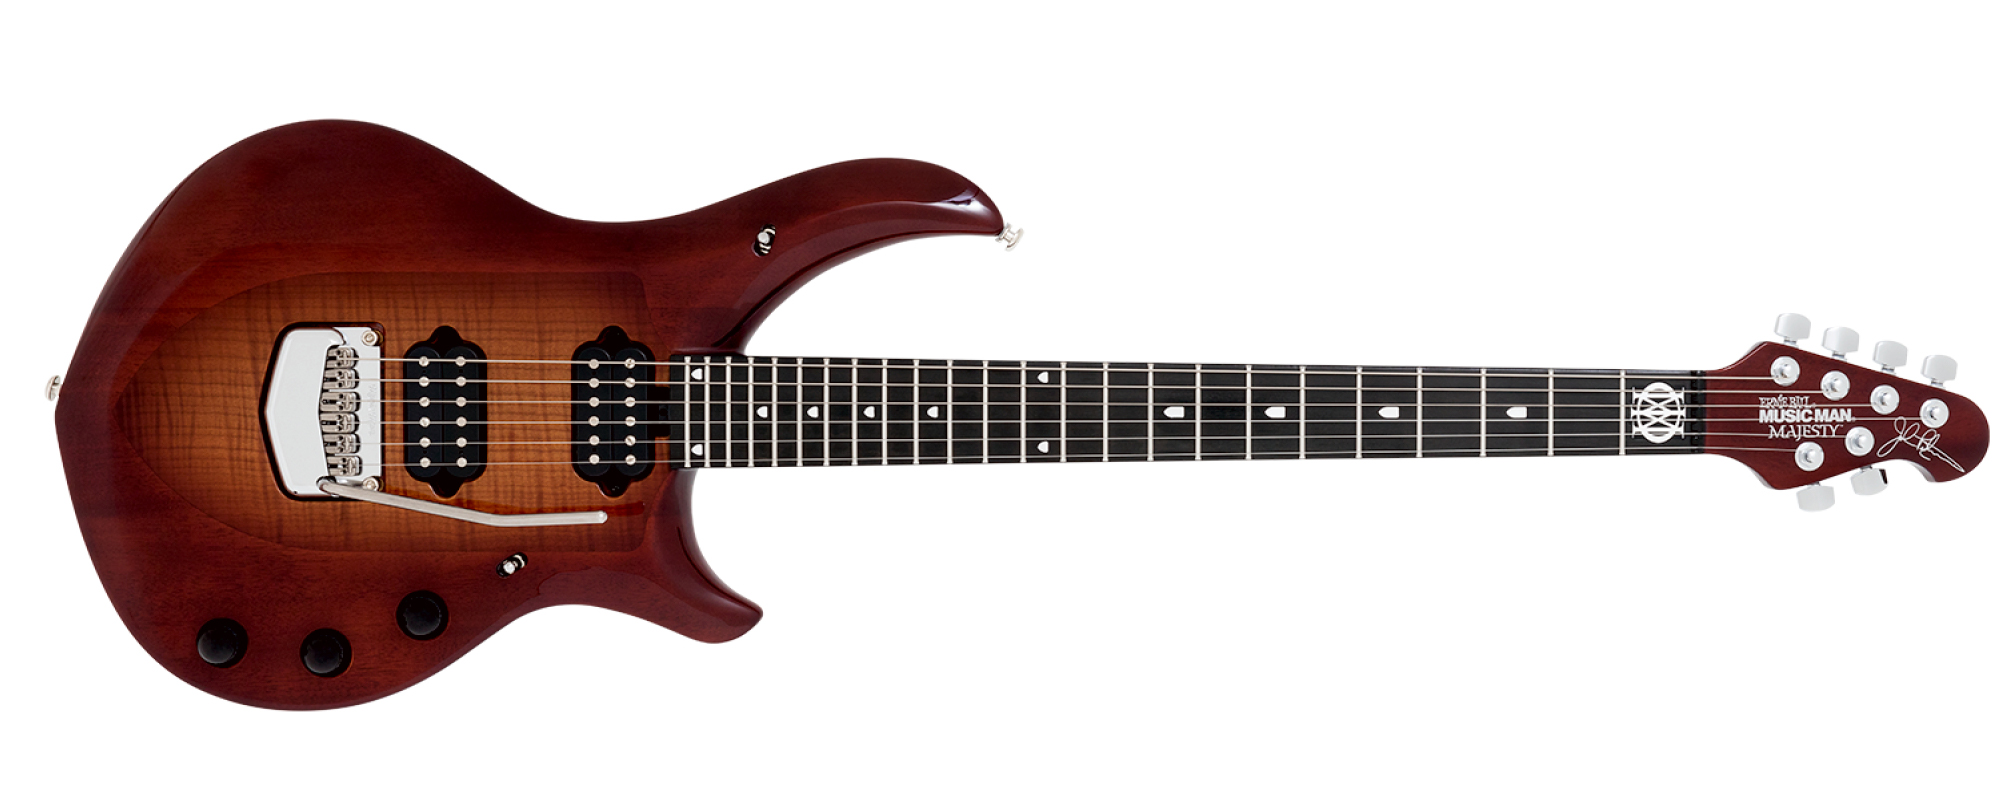 Ernie Ball Music Man John Petrucci